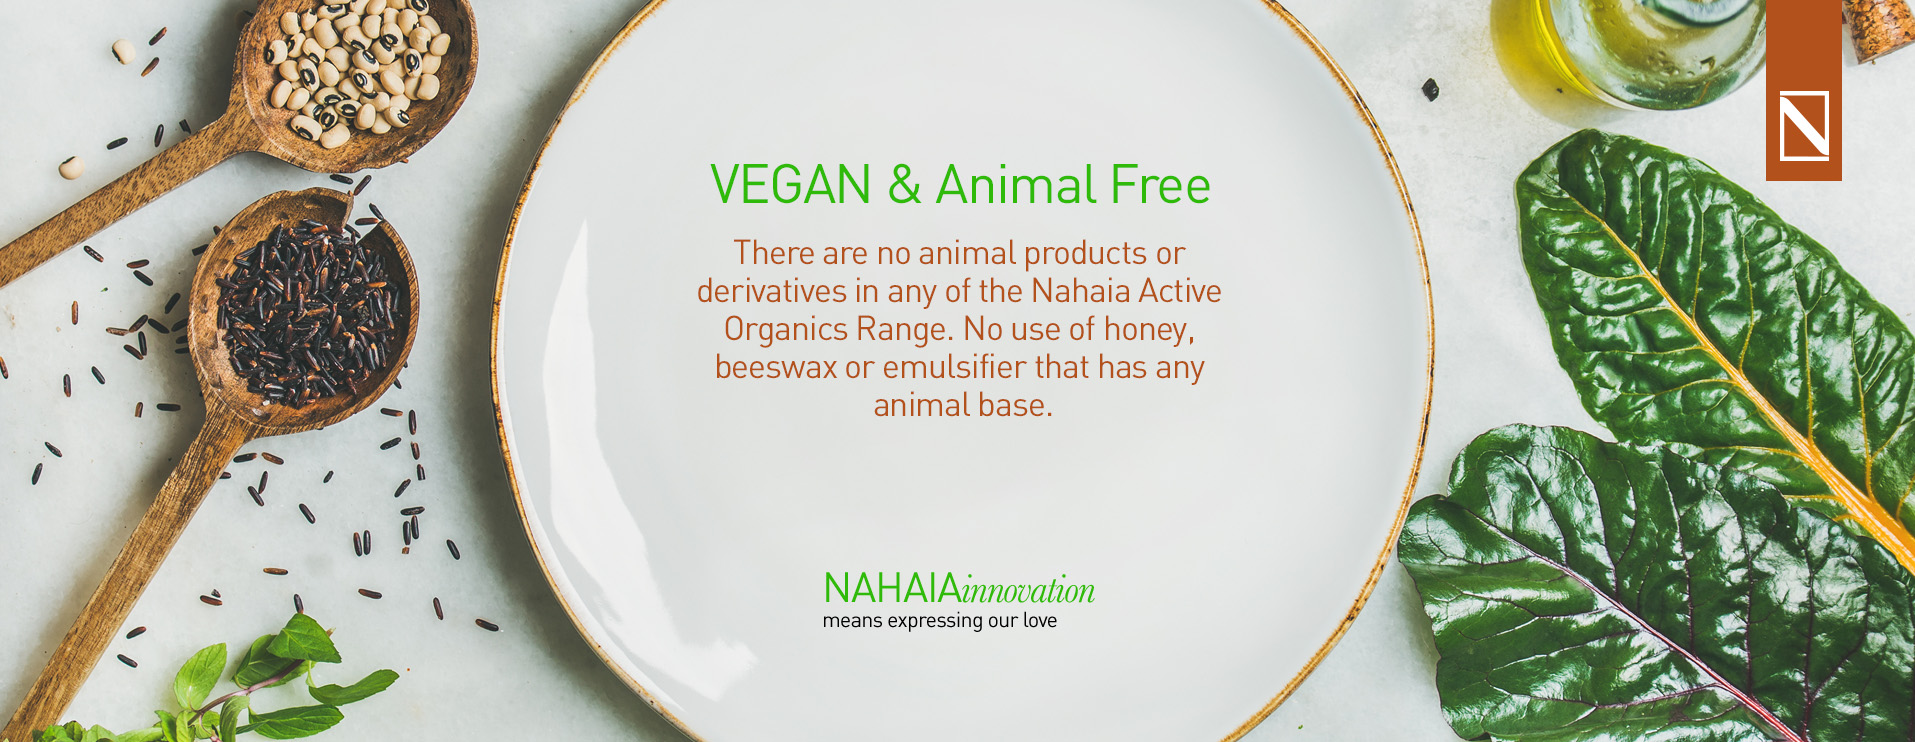 Nahaia Active Organics Vegan And Animal Free